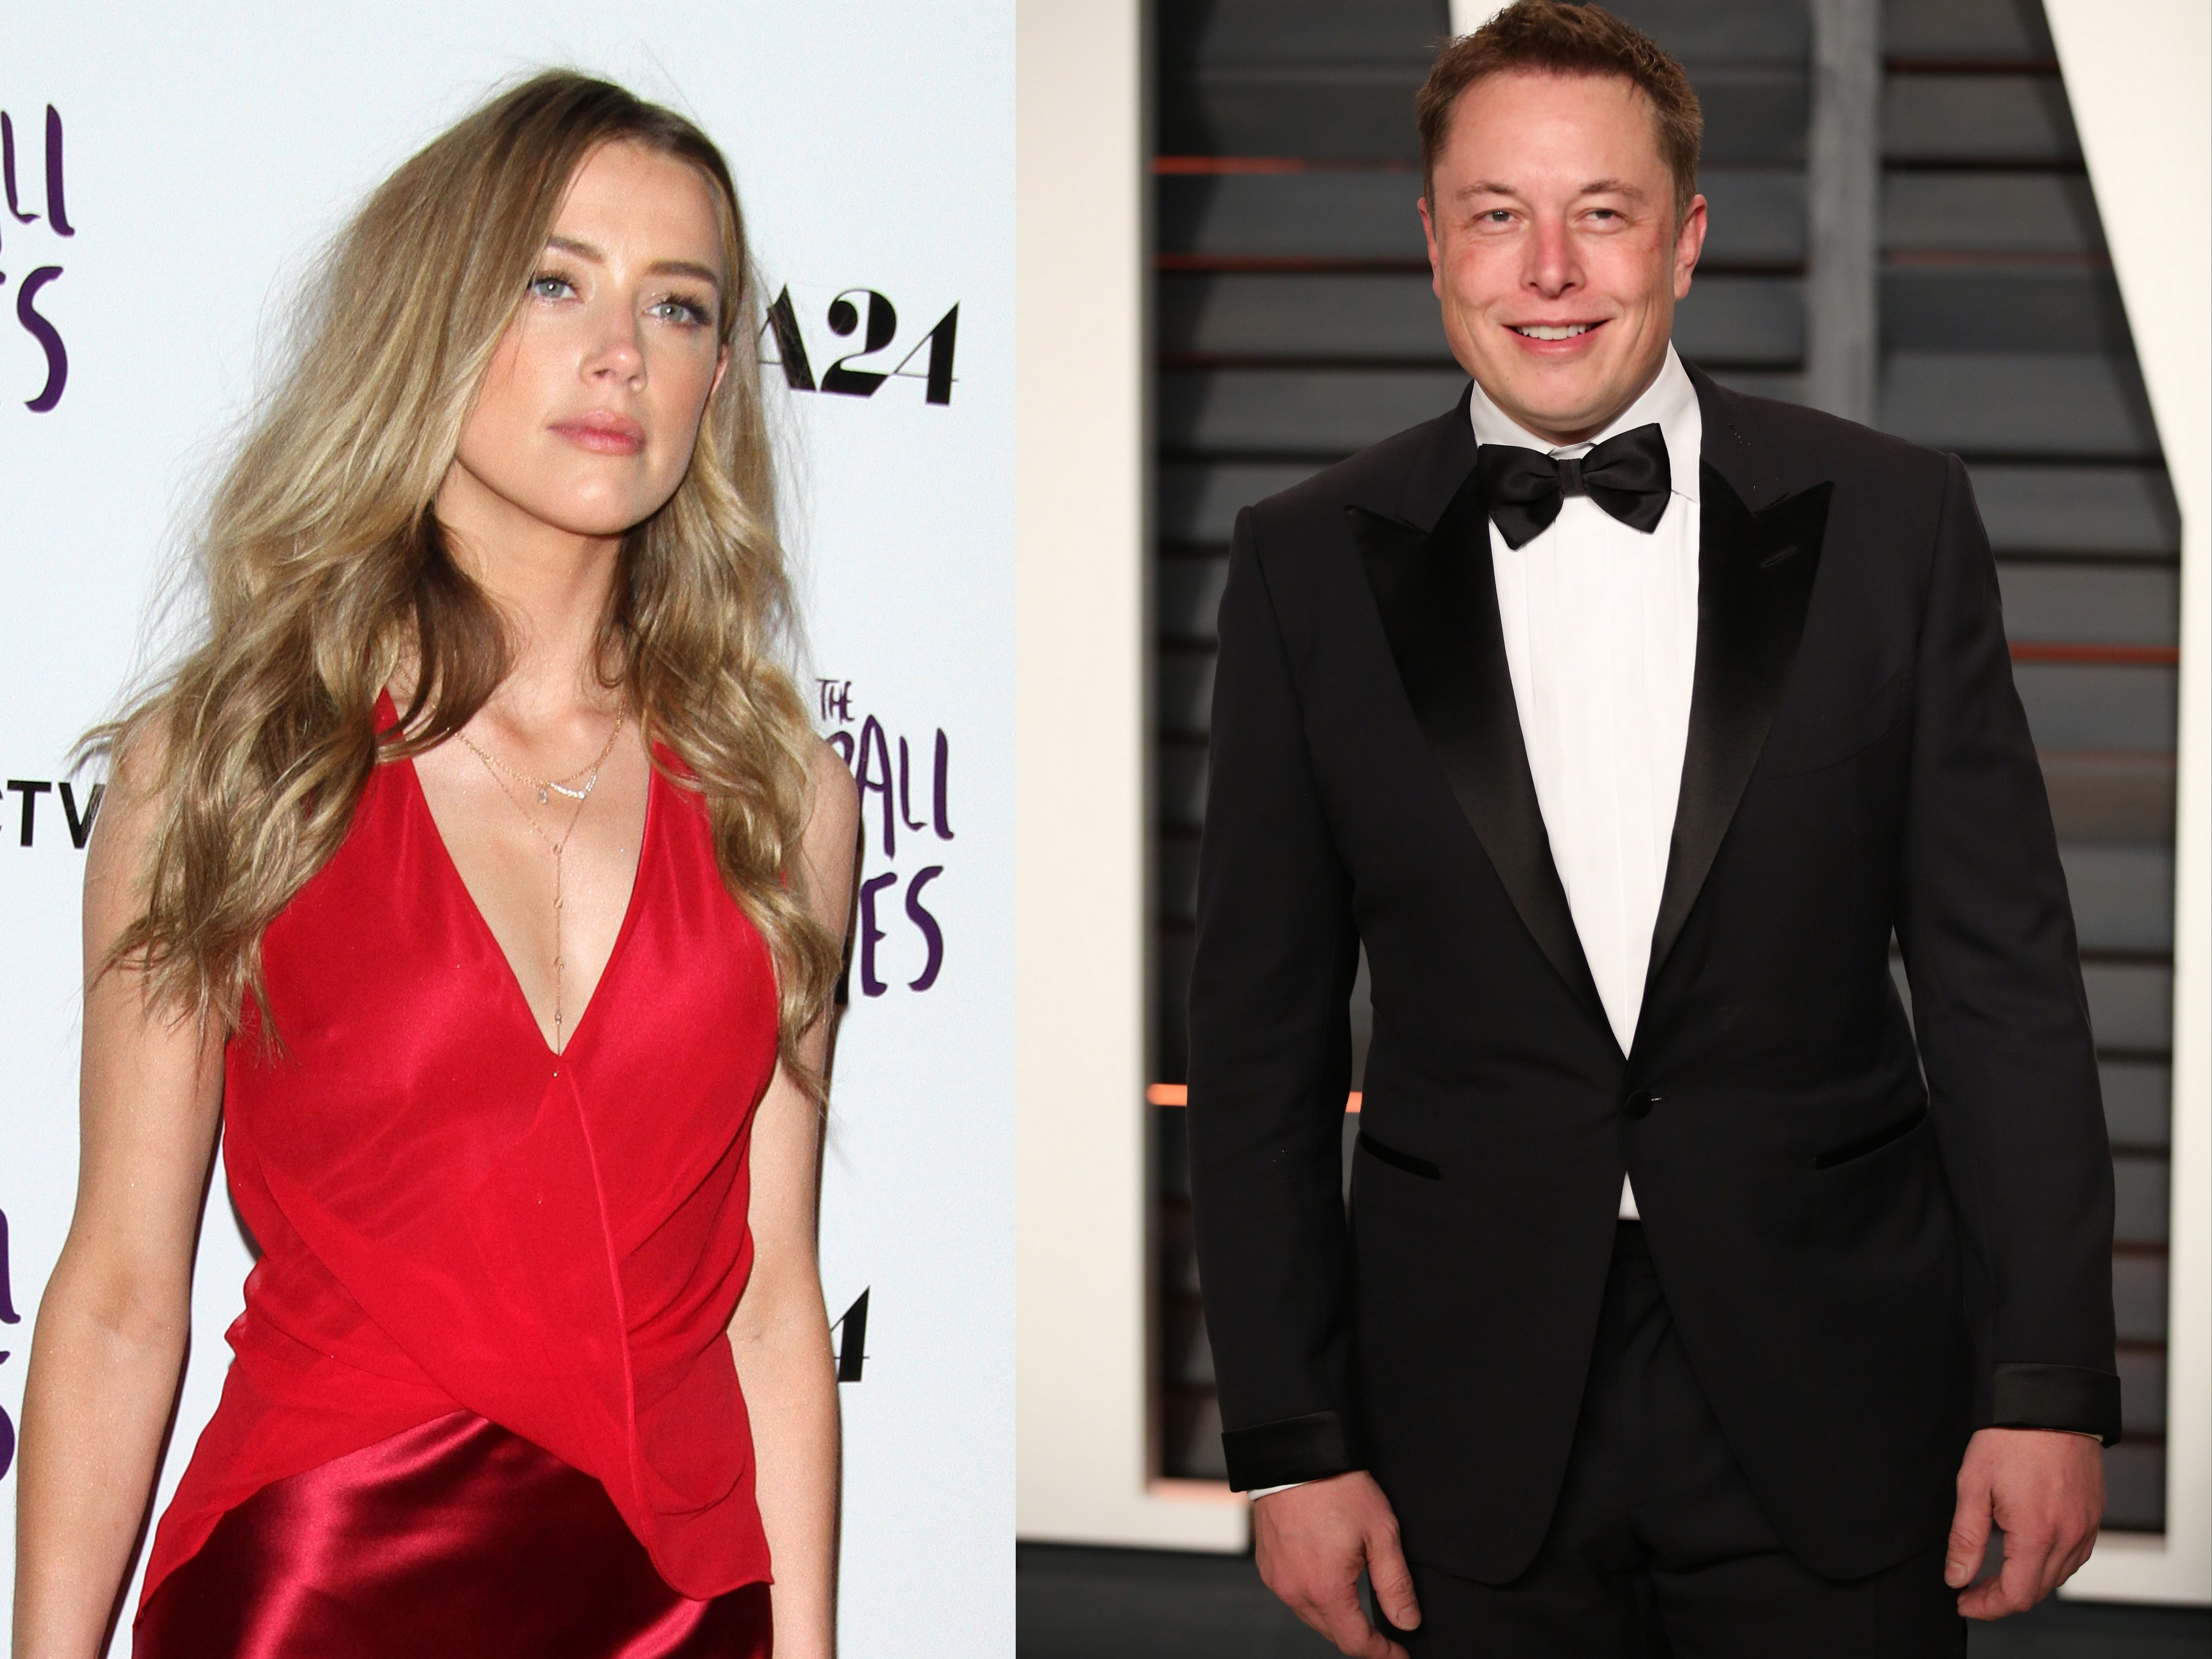 Elon Musk tried to meet Amber Heard for ages